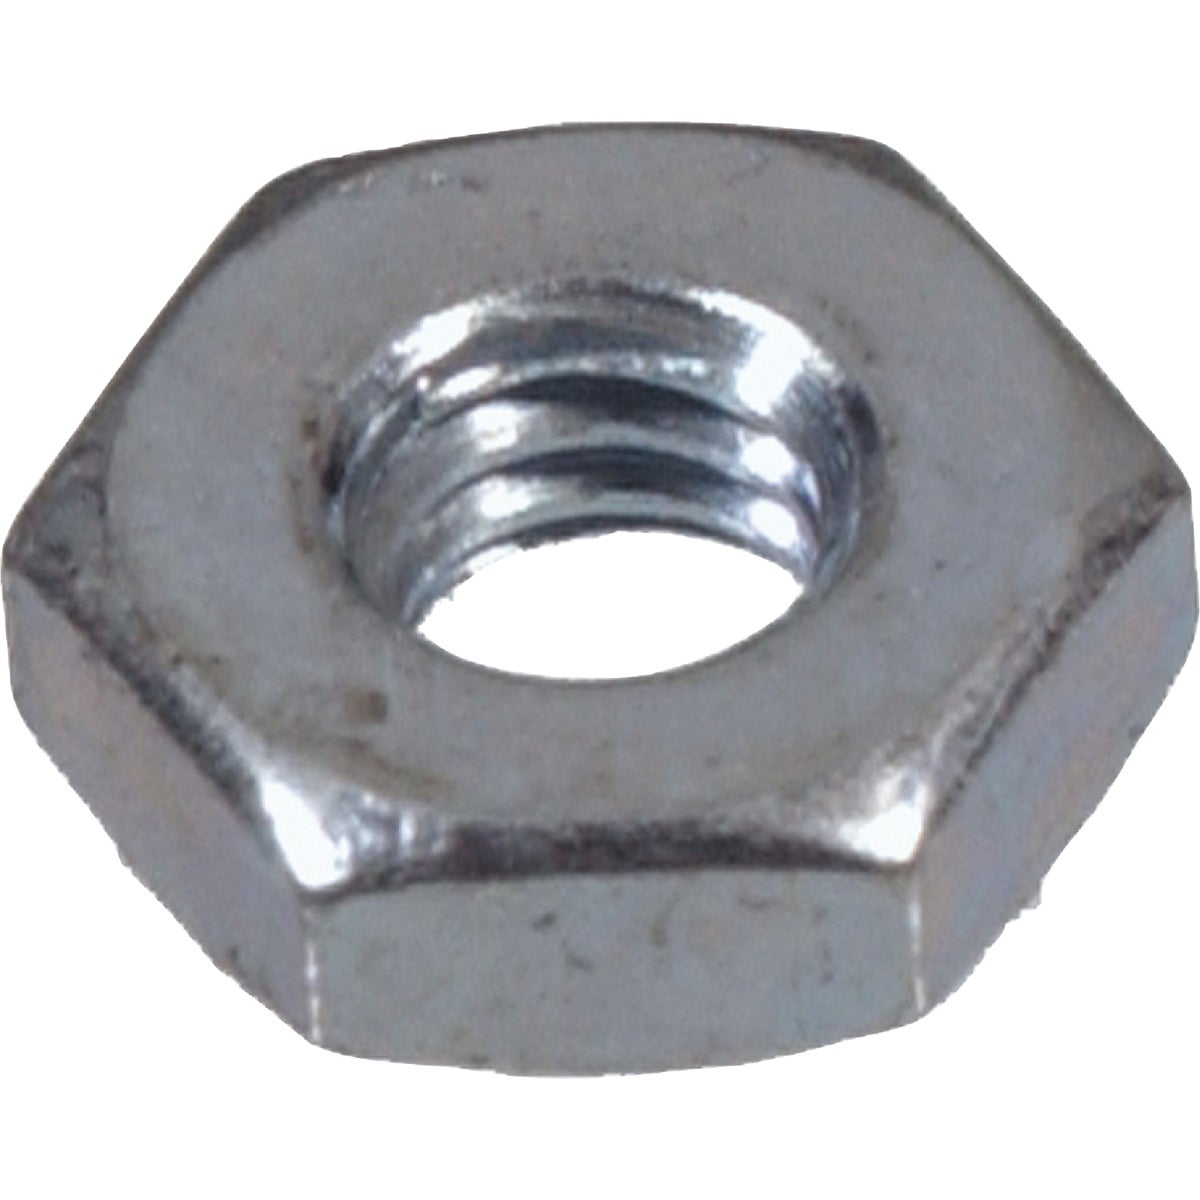 8-32 MACHINE SCREW NUT - 6203 by Hillman Fastener